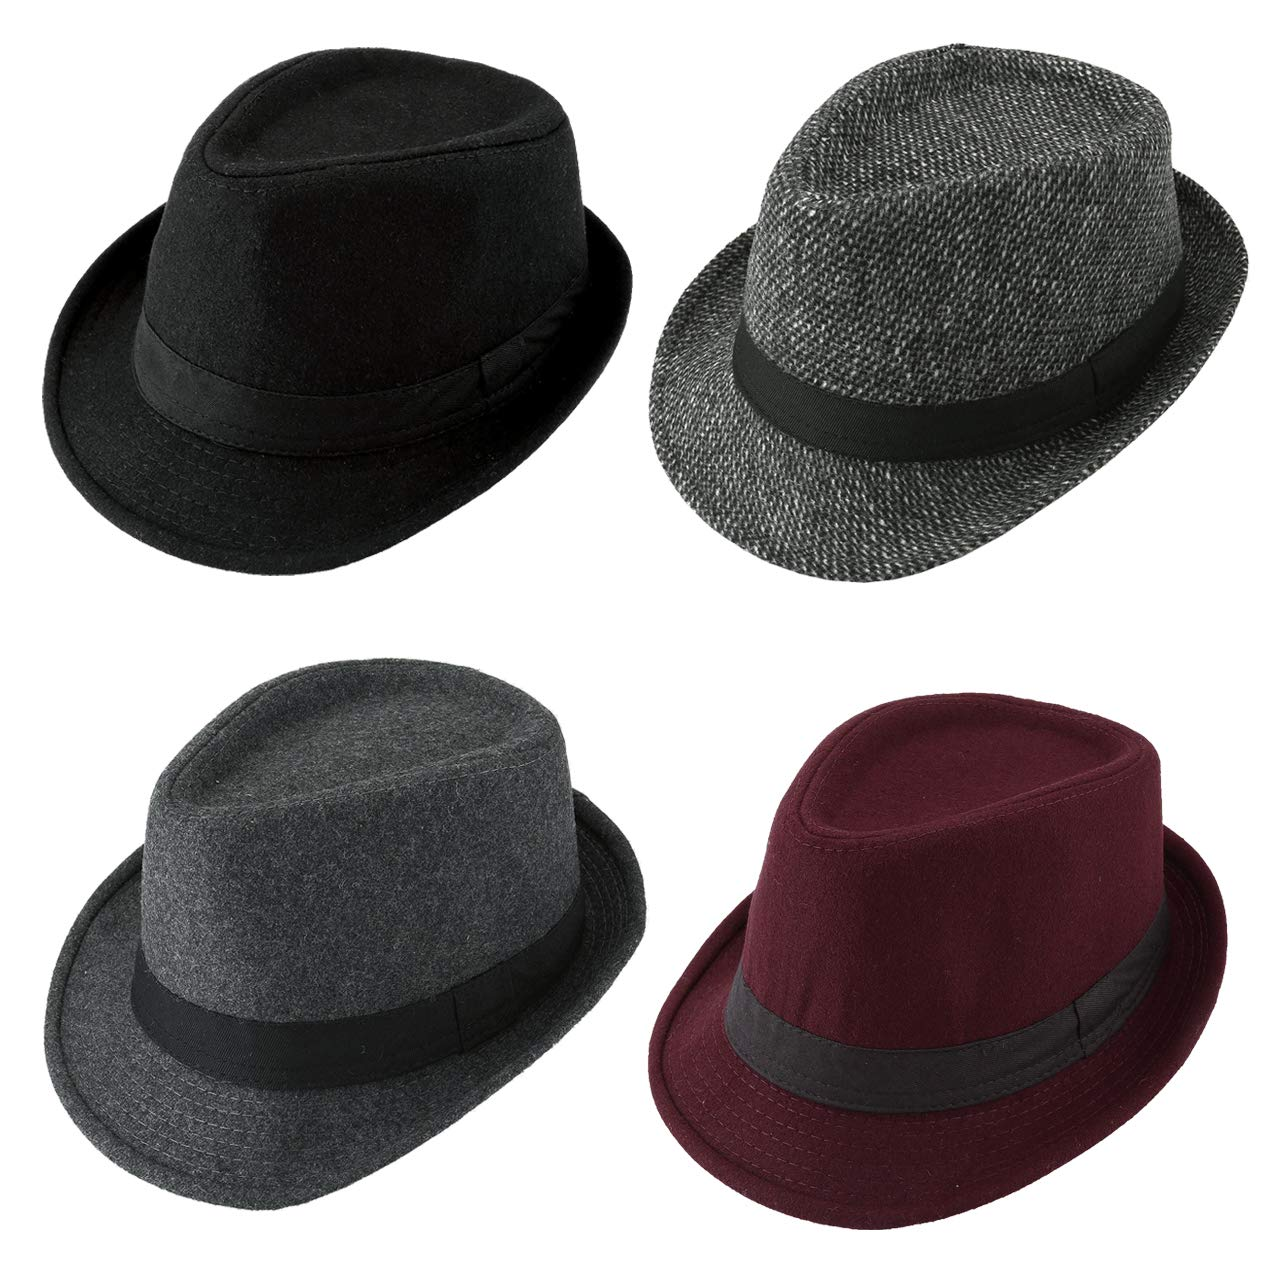 c2081d3066f FALETO Fedora Hat Trilby Hats Cotton Blended Panama Sun Jazz Cap for Mens  Womens,4 Colors: Amazon.co.uk: Clothing